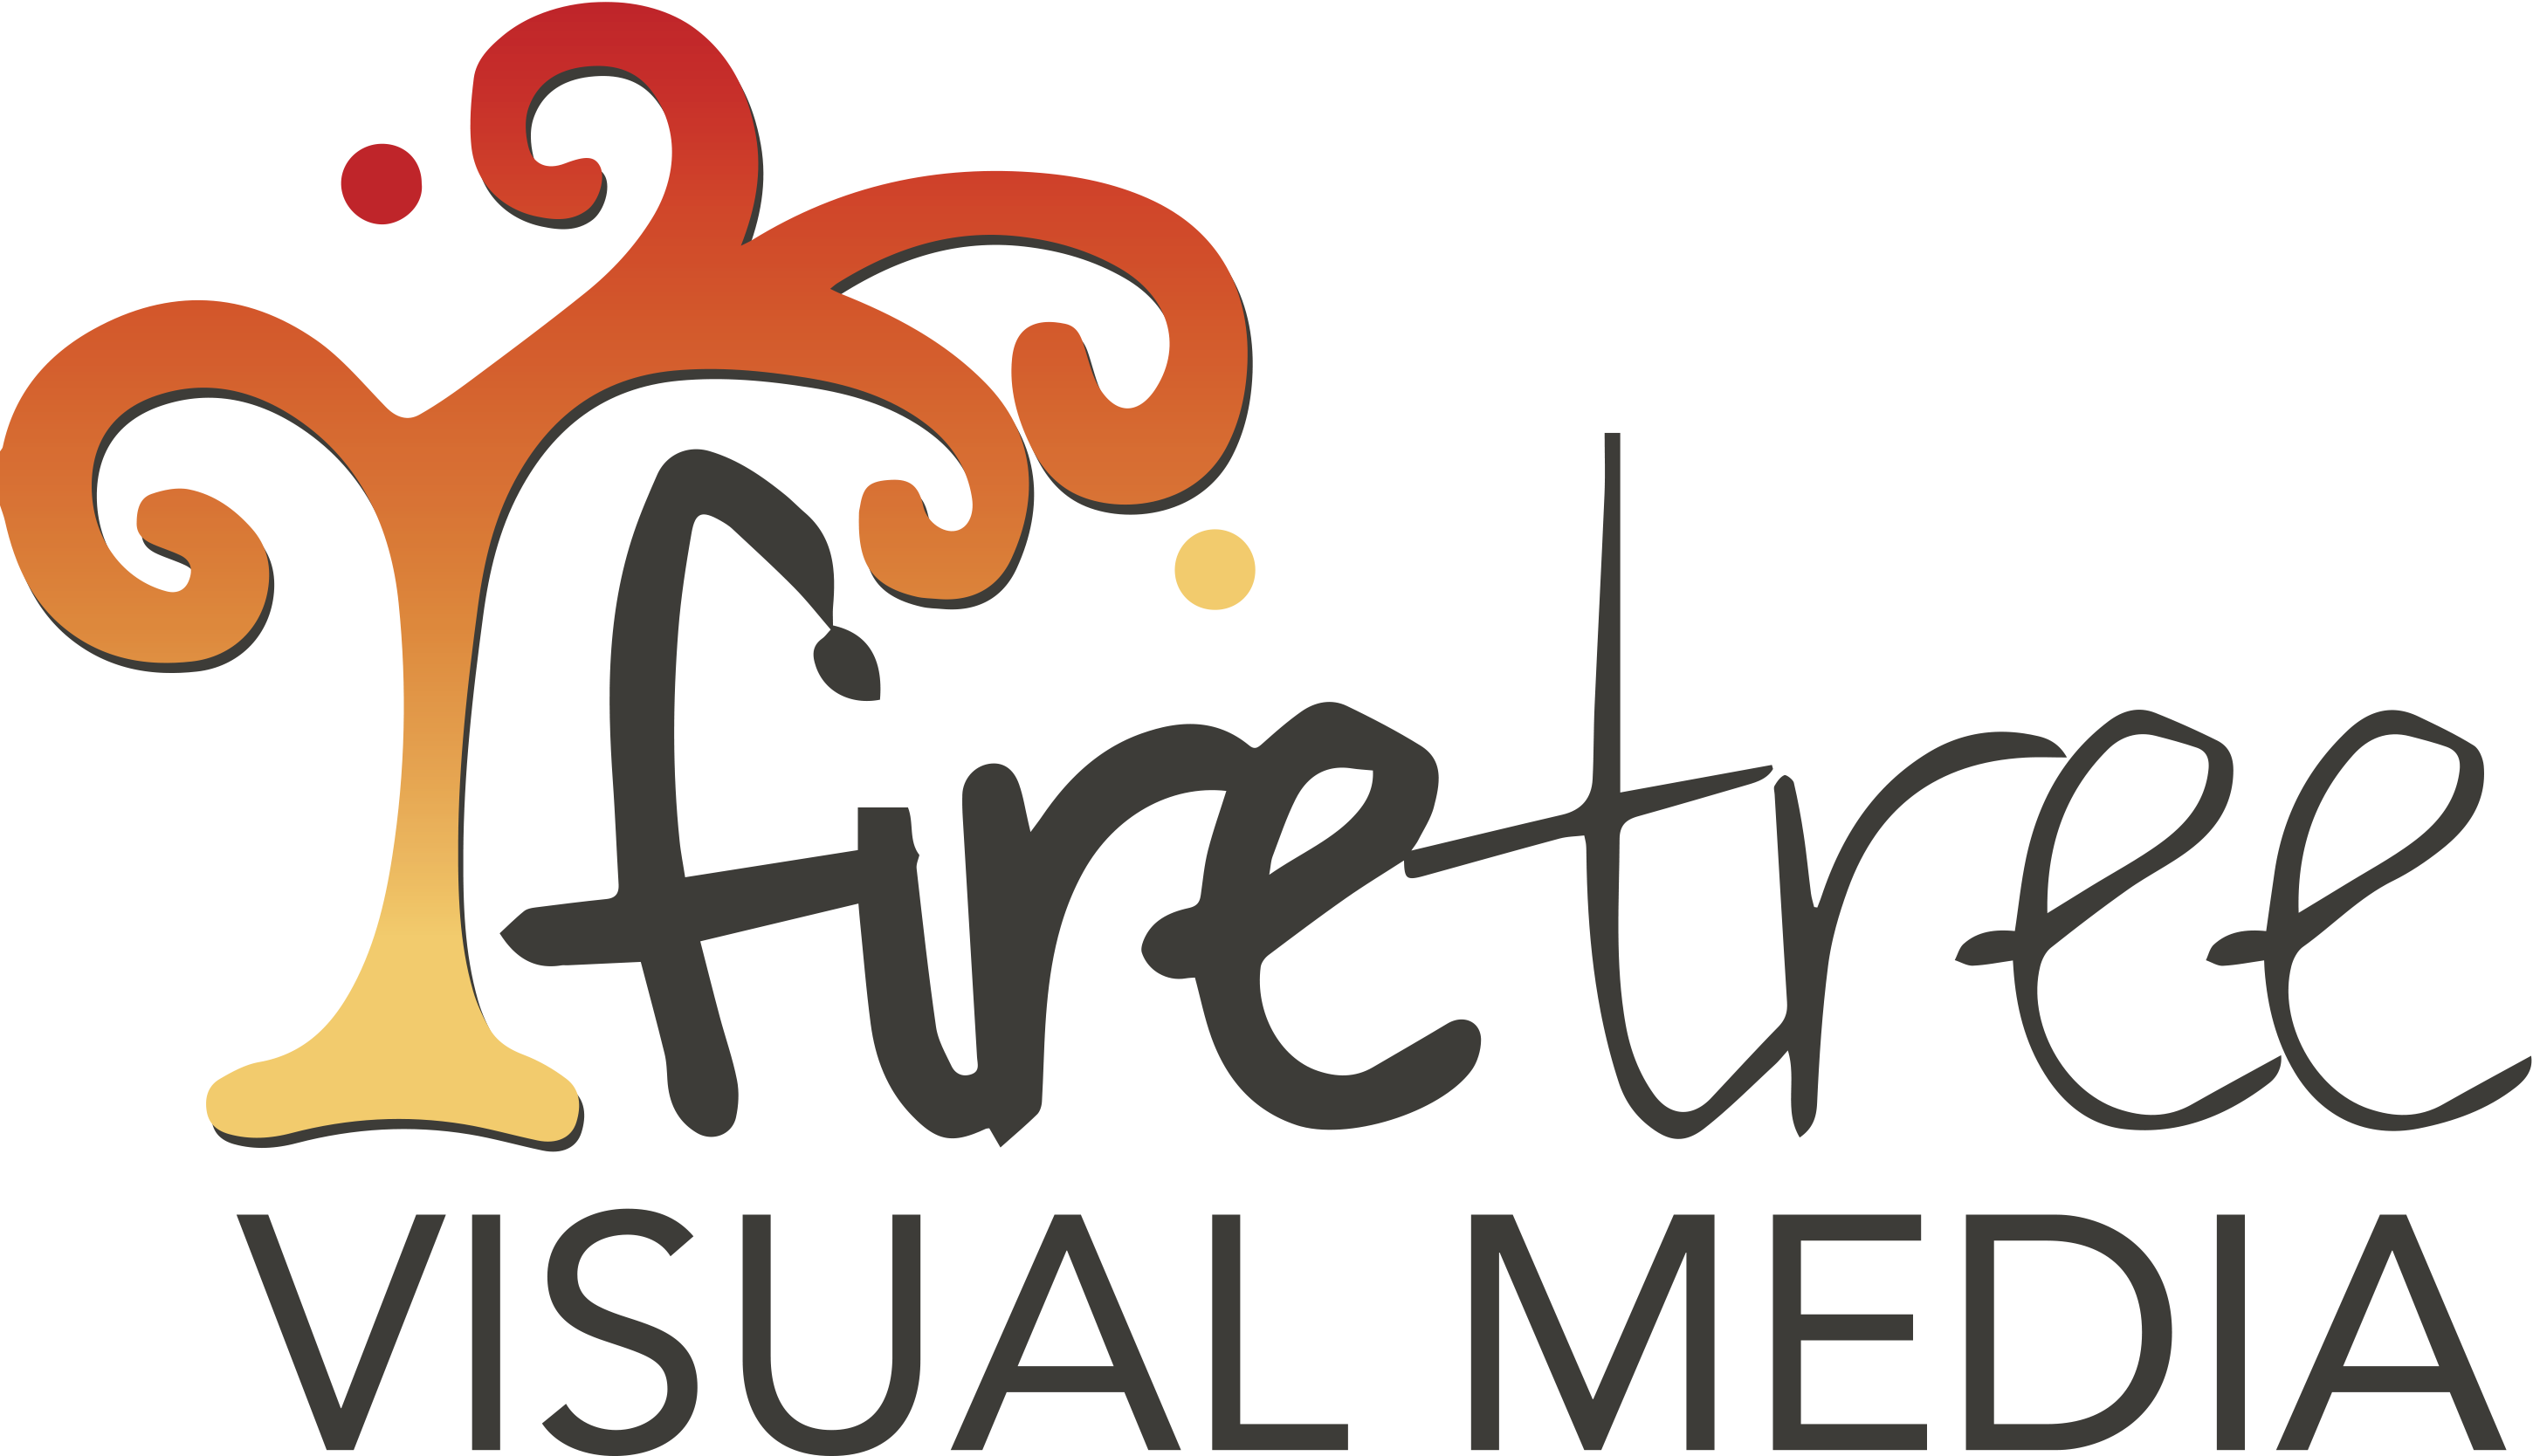 Firetree Visual Media